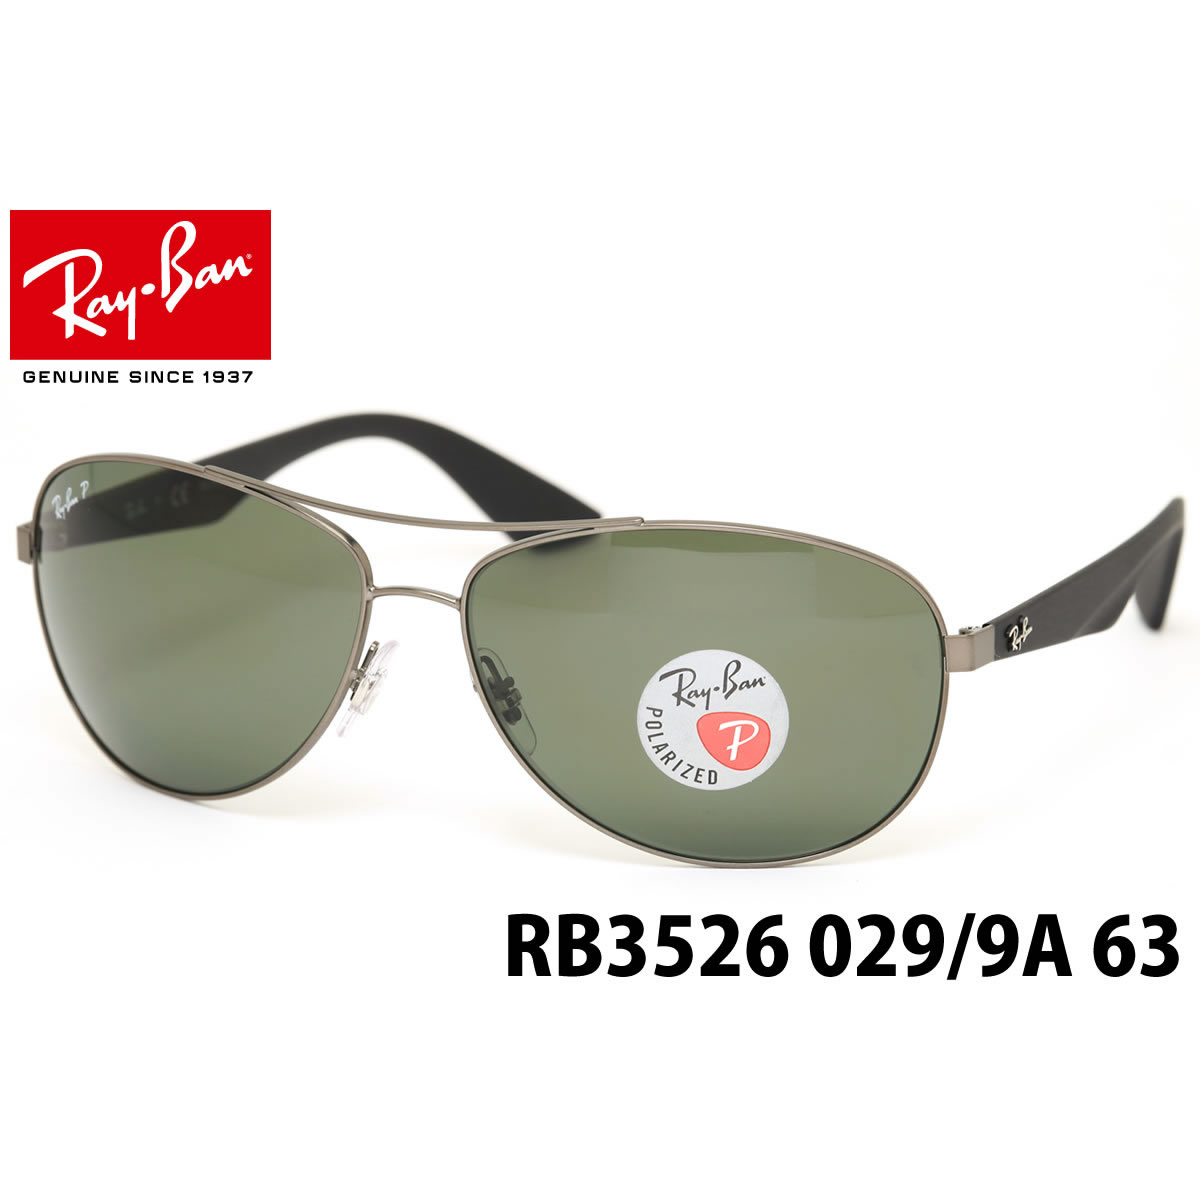 771e31da499 Optical Shop Thats  Ray-Ban Sunglasses RB3526 029 9A 63size GENUINE ...